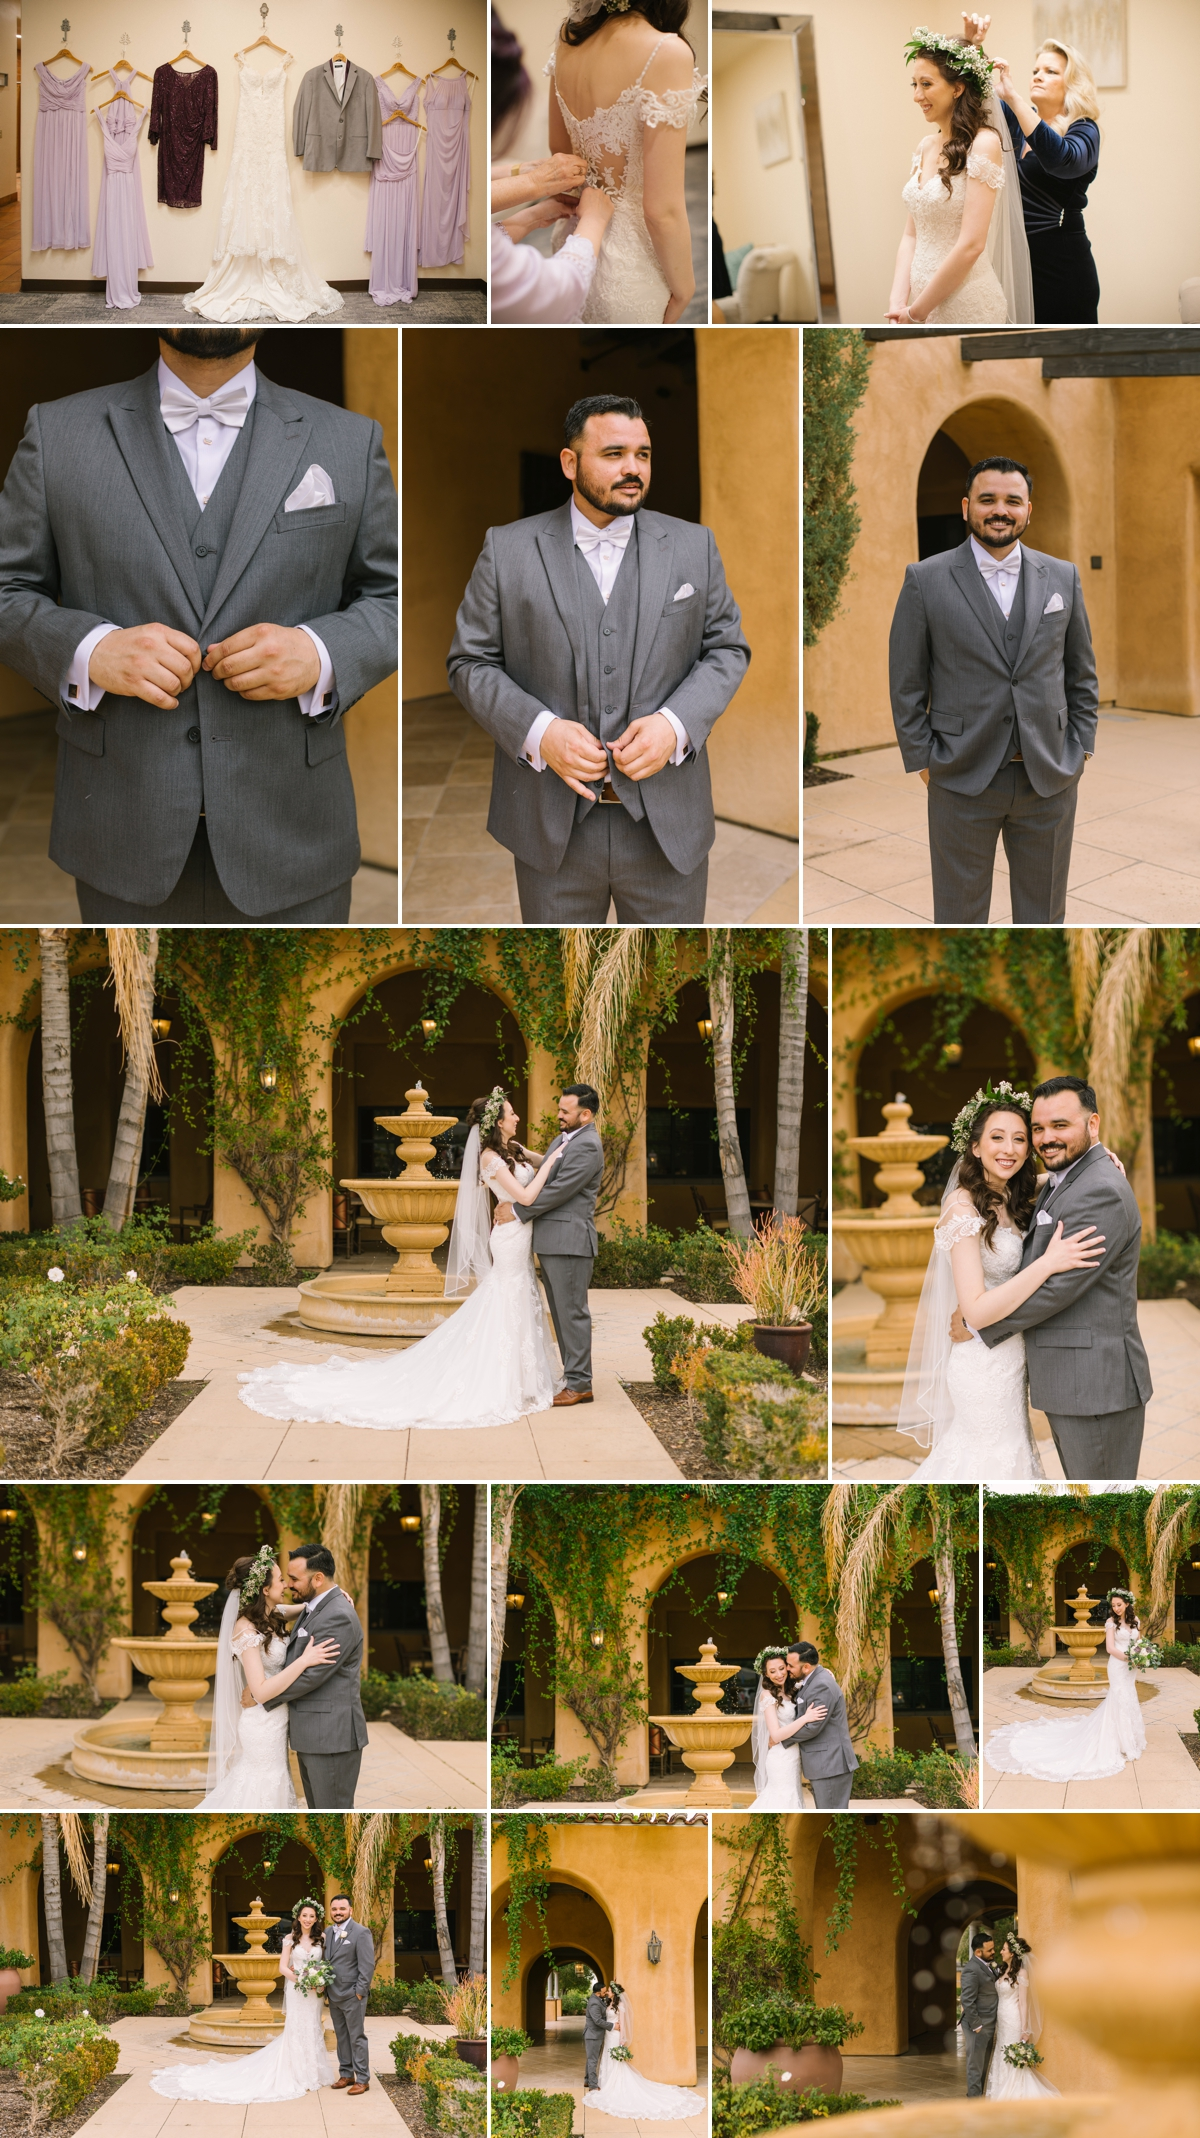 affordable-wedding-photography-orange-county-wedgewood-at-the-retreatwedding-shy-heart-studios-1.